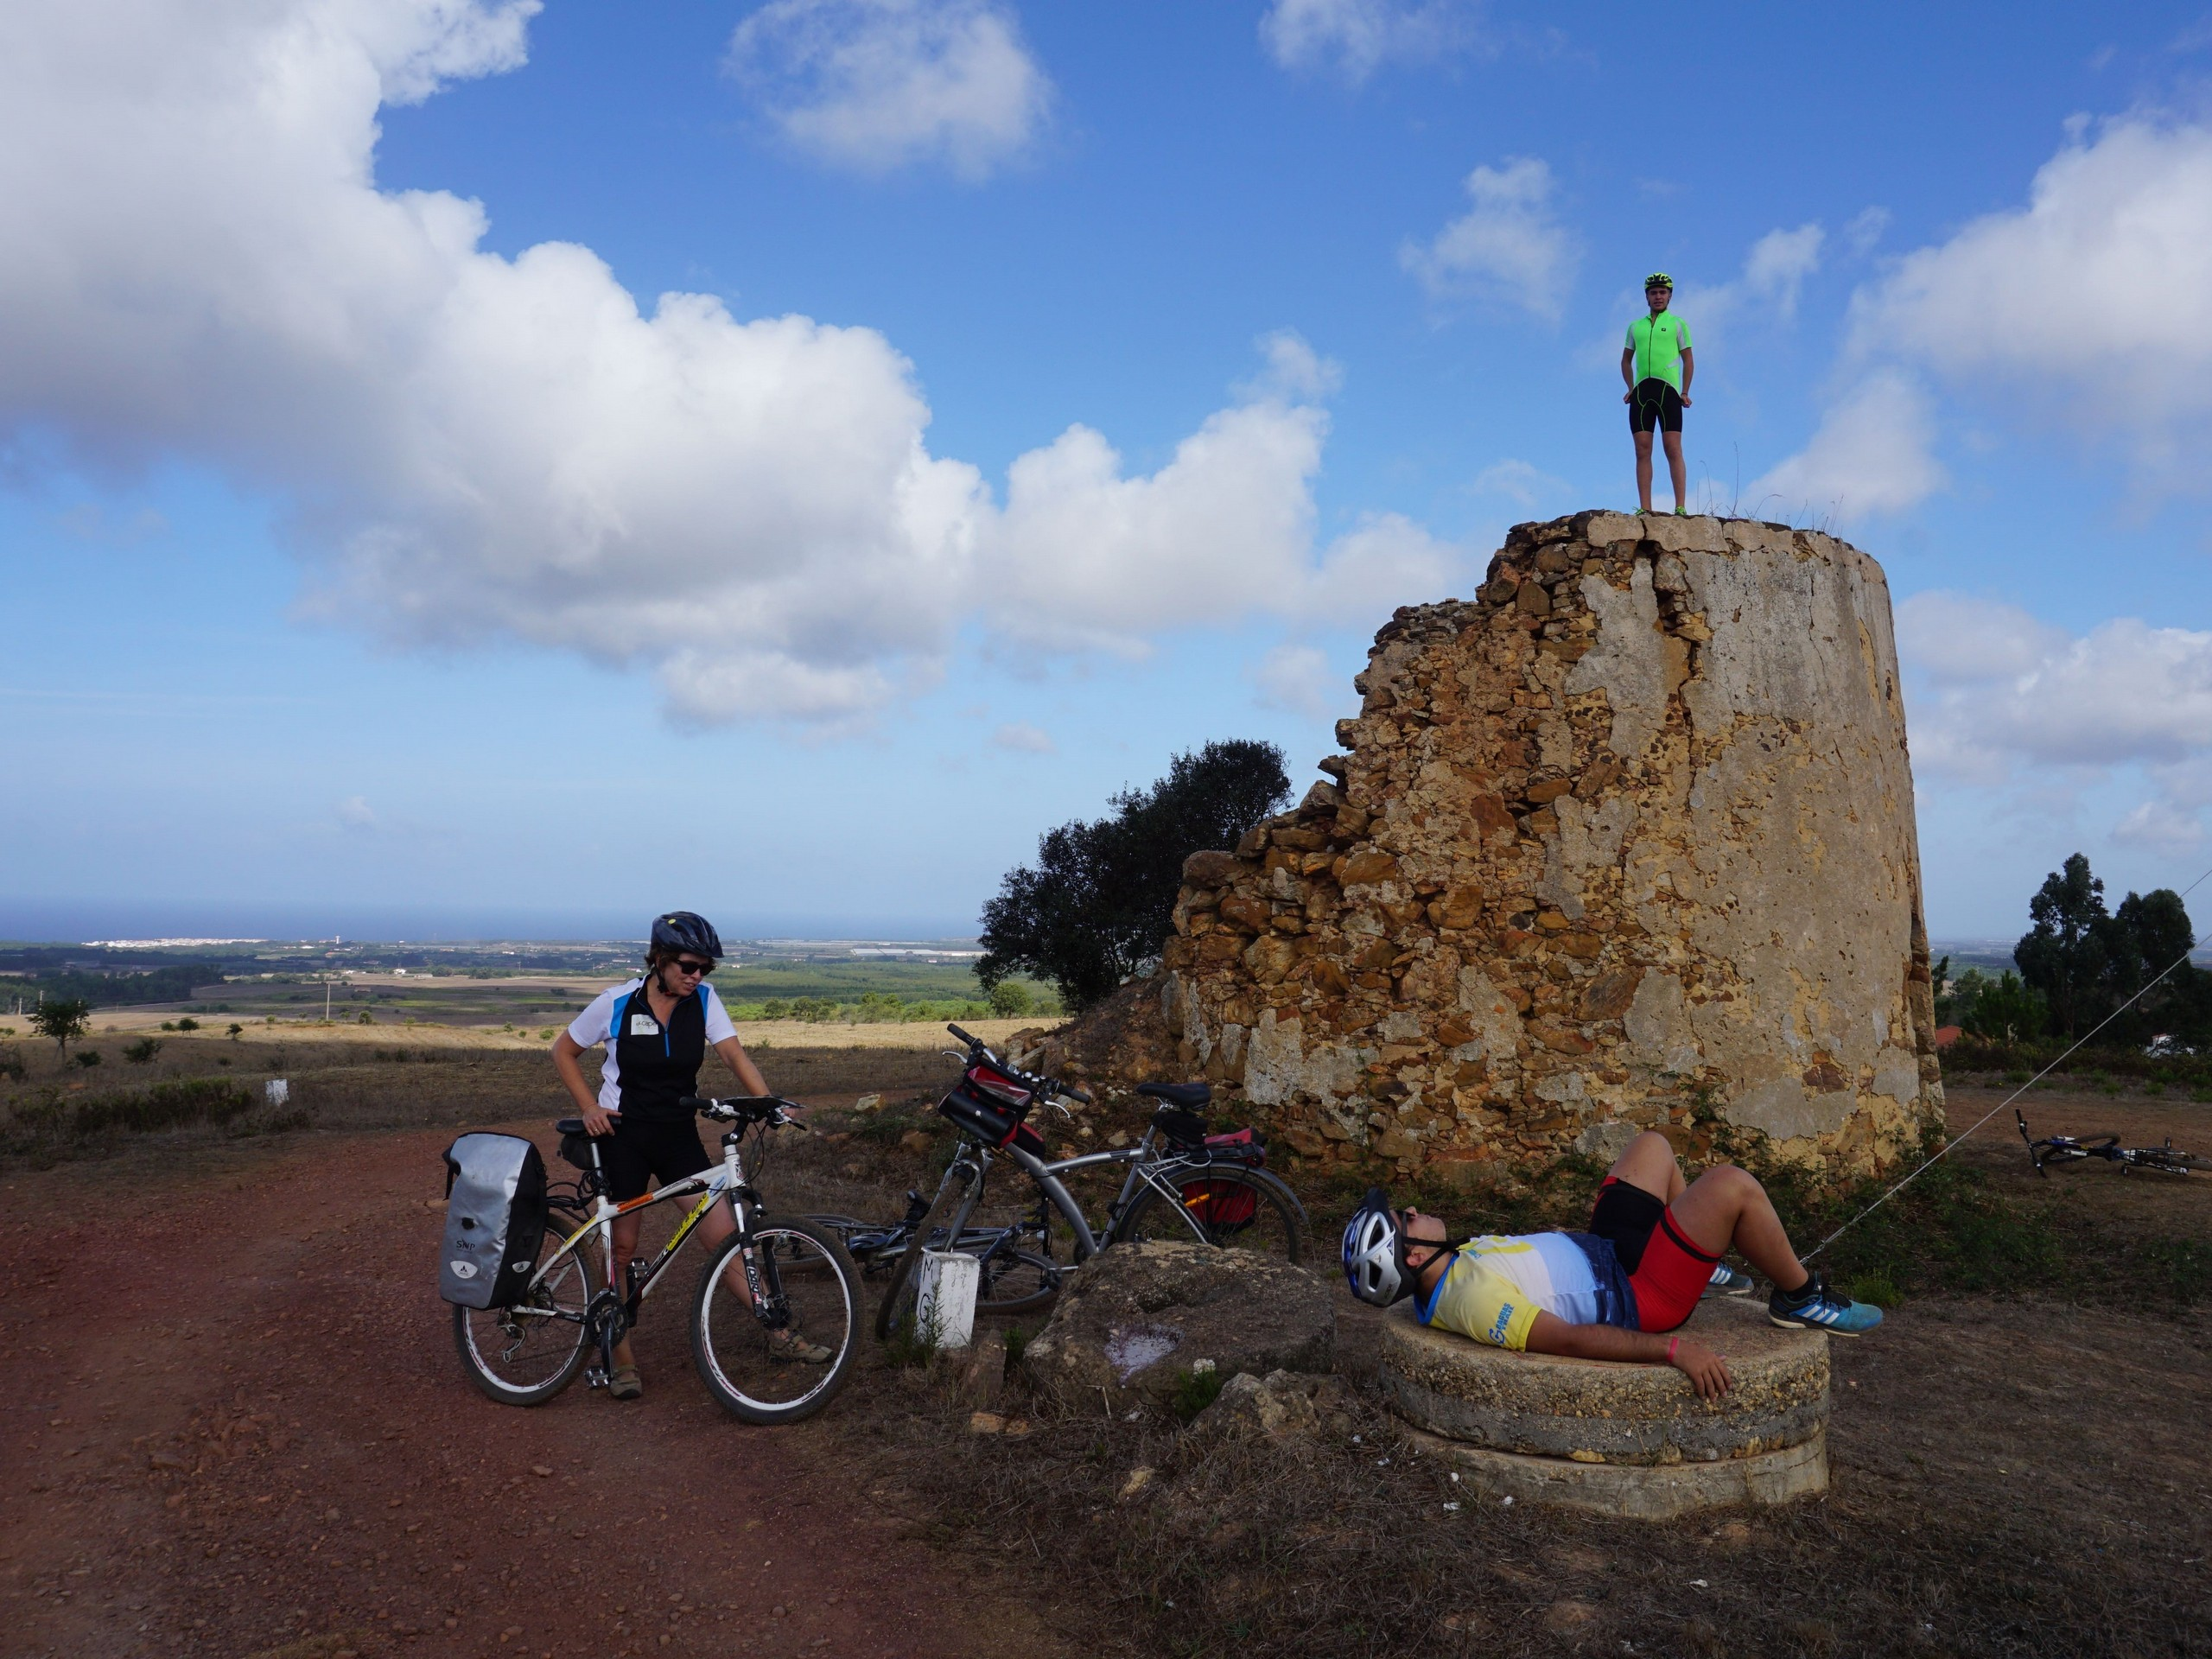 Bikers resting along the cycling route in Portugal